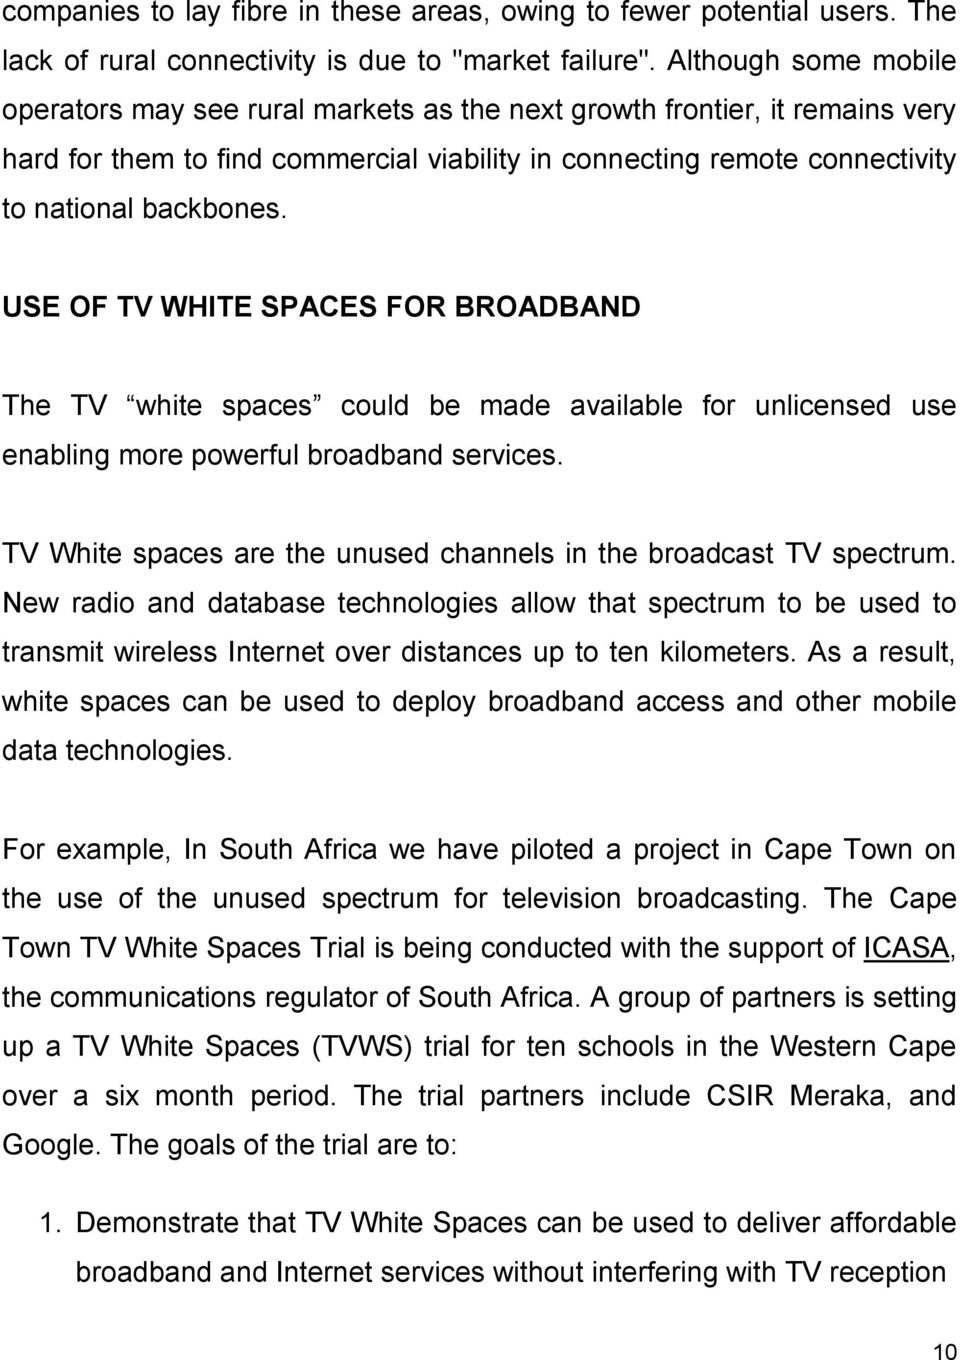 USE OF TV WHITE SPACES FOR BROADBAND The TV white spaces could be made available for unlicensed use enabling more powerful broadband services.